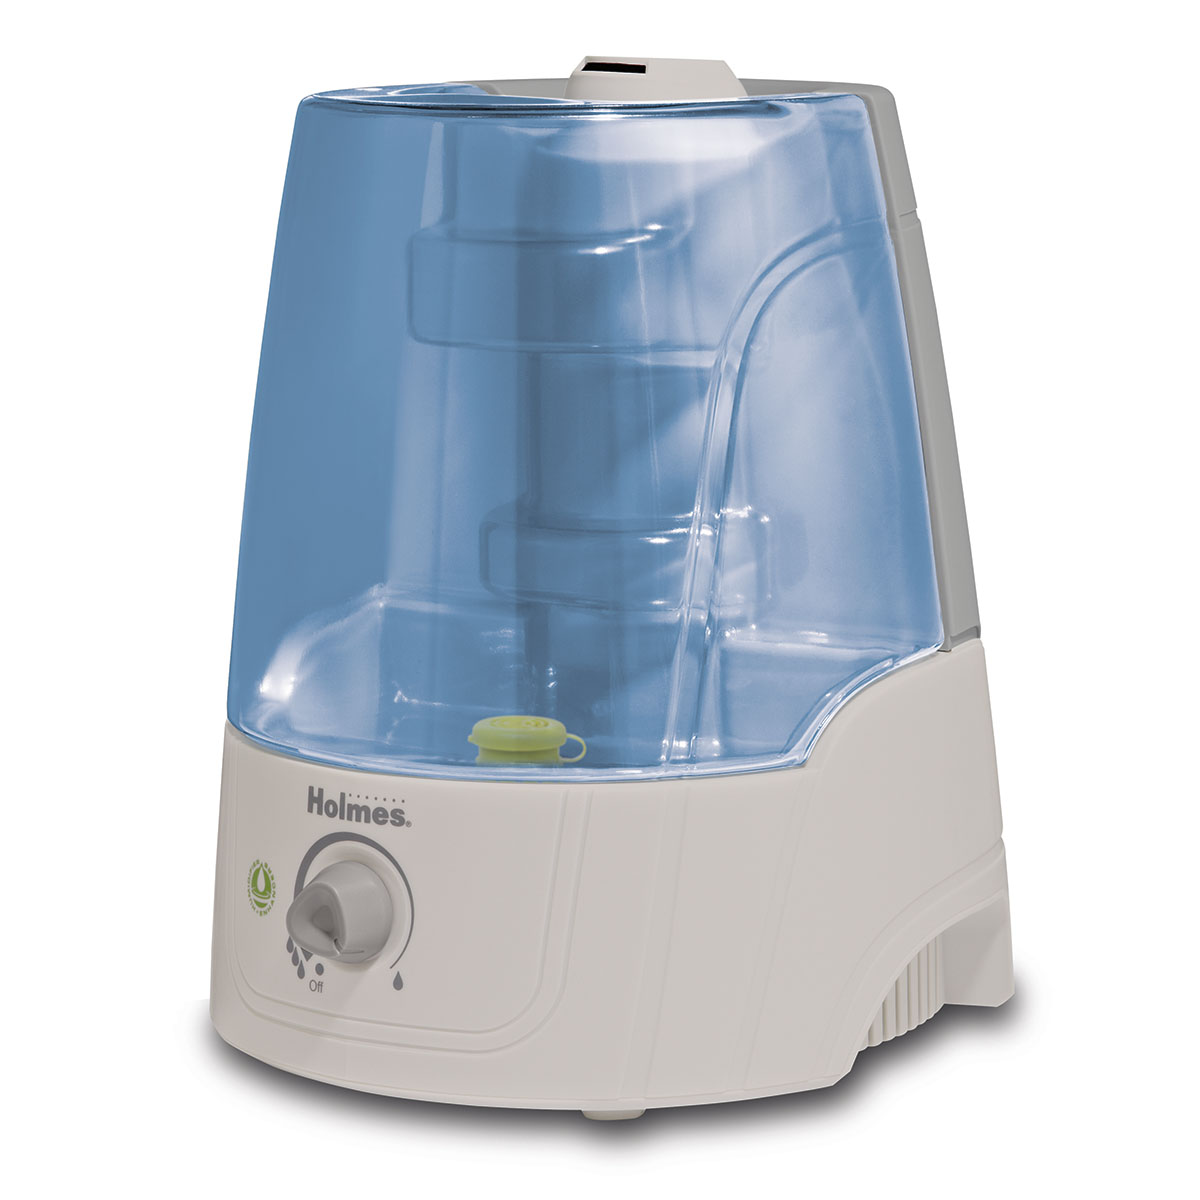 Holmes Ultrasonic Filter Free Air Humidifier 2 Gallon White